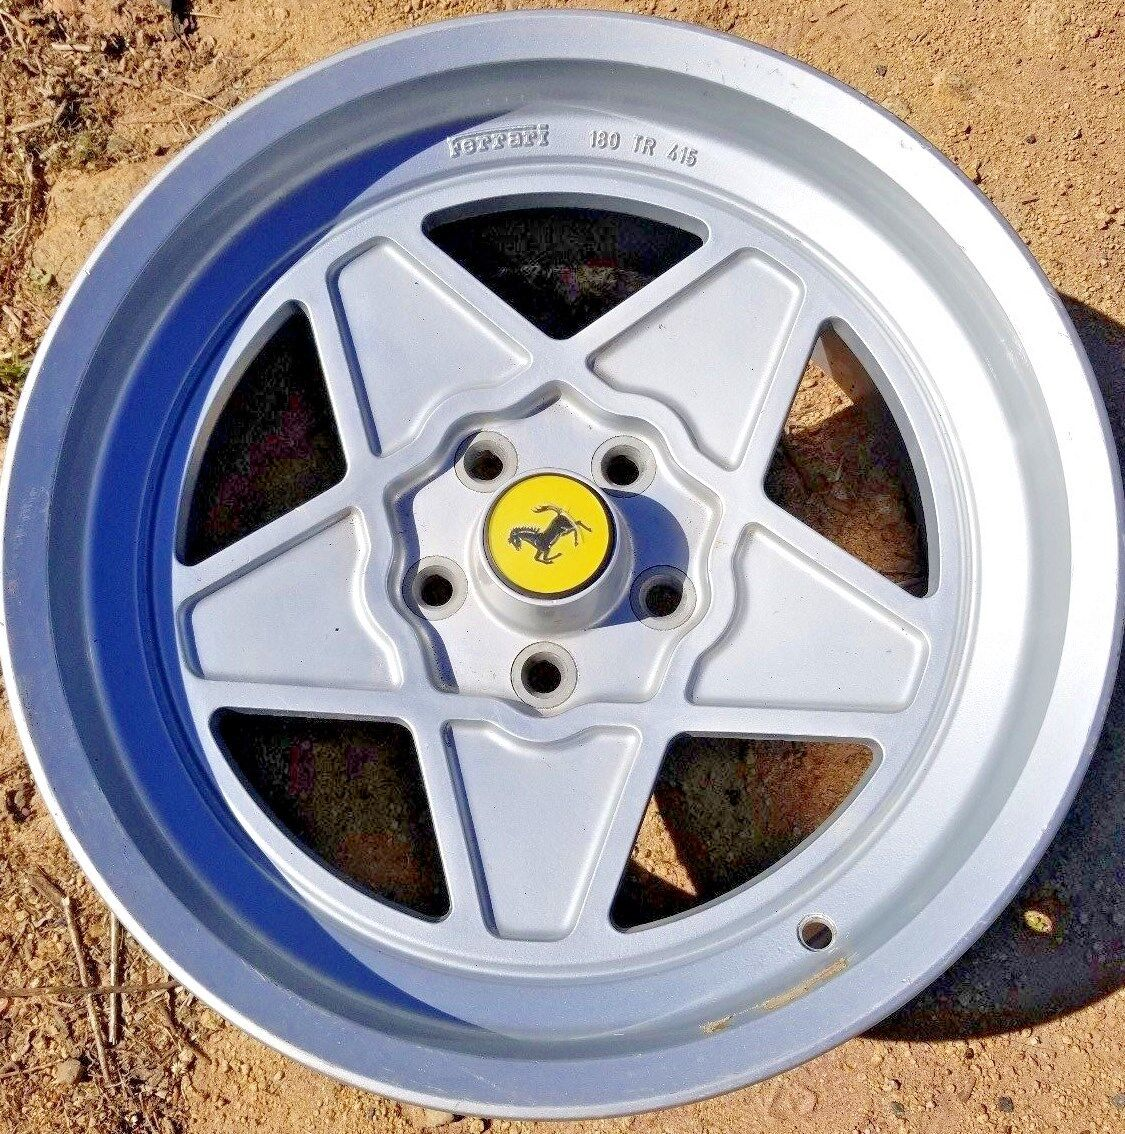 Ferrari 400i metric wheel